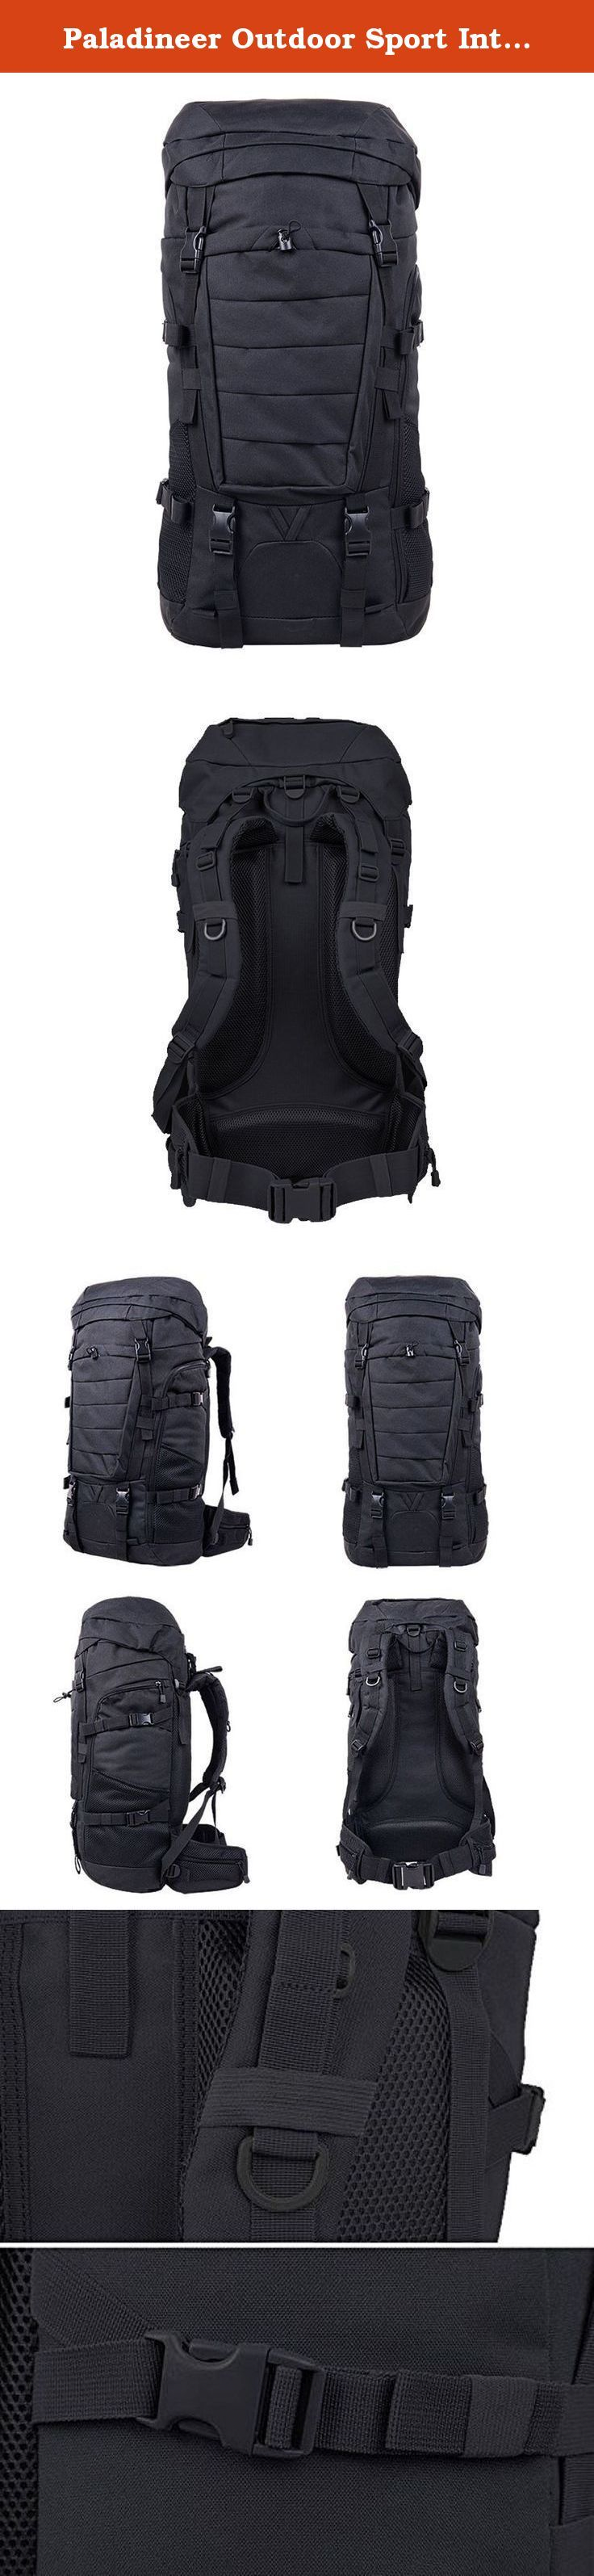 """Paladineer Outdoor Sport Internal Frame Backpack 70-liters NeoBlack. Product Specifications: Capacity: 70L Size: 14.96"""" x9.84"""" x29.92"""" Material: Nylon Bear system structure: Balance Product Features: *Made of high quality 600D Thickened Nylon. *High density foam padded shoulder straps making you feel extremely comfortable. *Adjustable sternum strap stabilizes pack for maximum comfort on the move. *Molded foam back panel with airflow channels keep your back dry. *Adjustable buckles help..."""